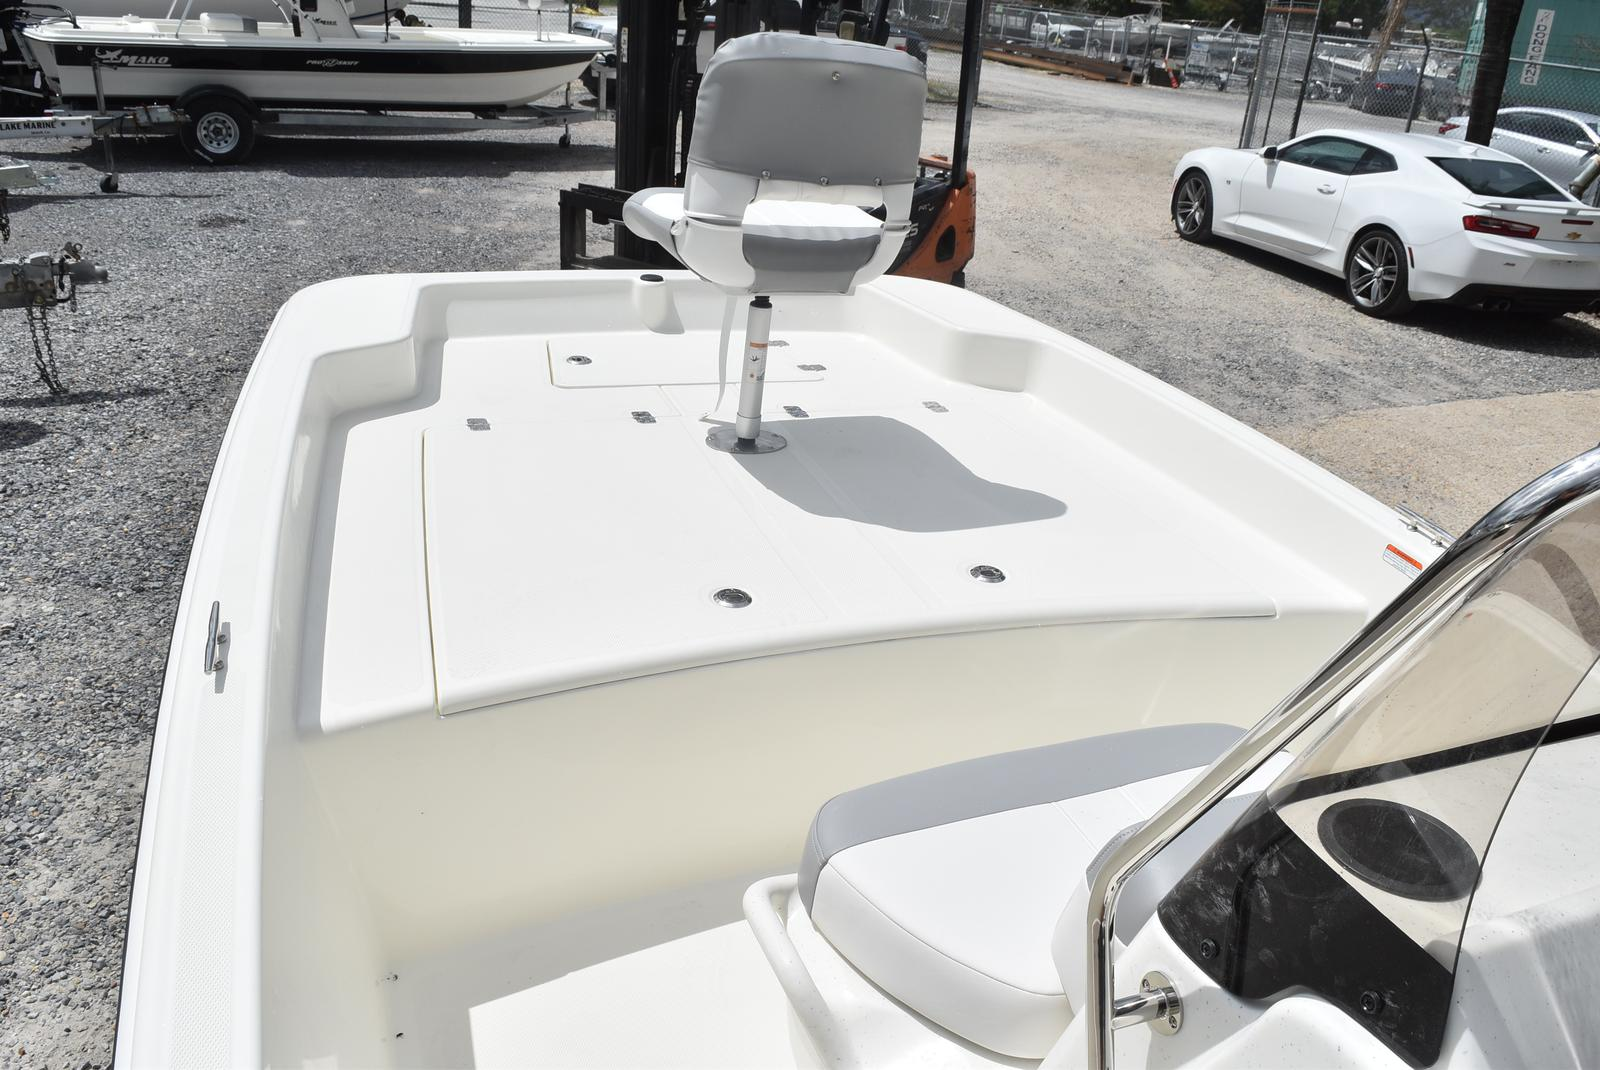 2020 Mako boat for sale, model of the boat is Pro Skiff 17, 75 ELPT & Image # 421 of 702